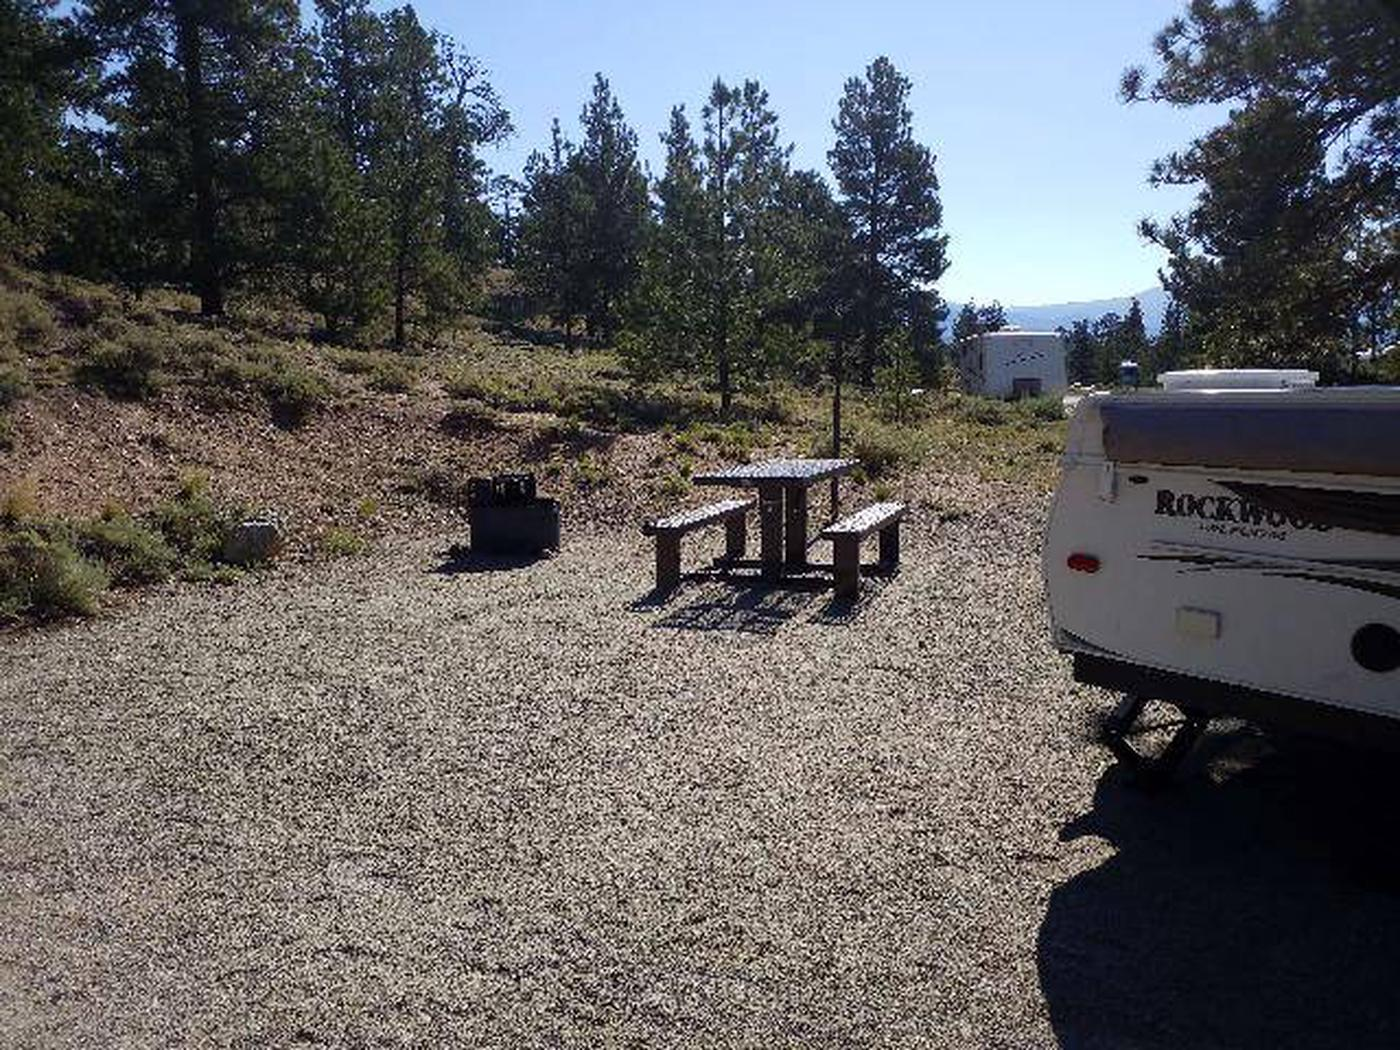 White Star Campground, site 27 picnic table and fire ring